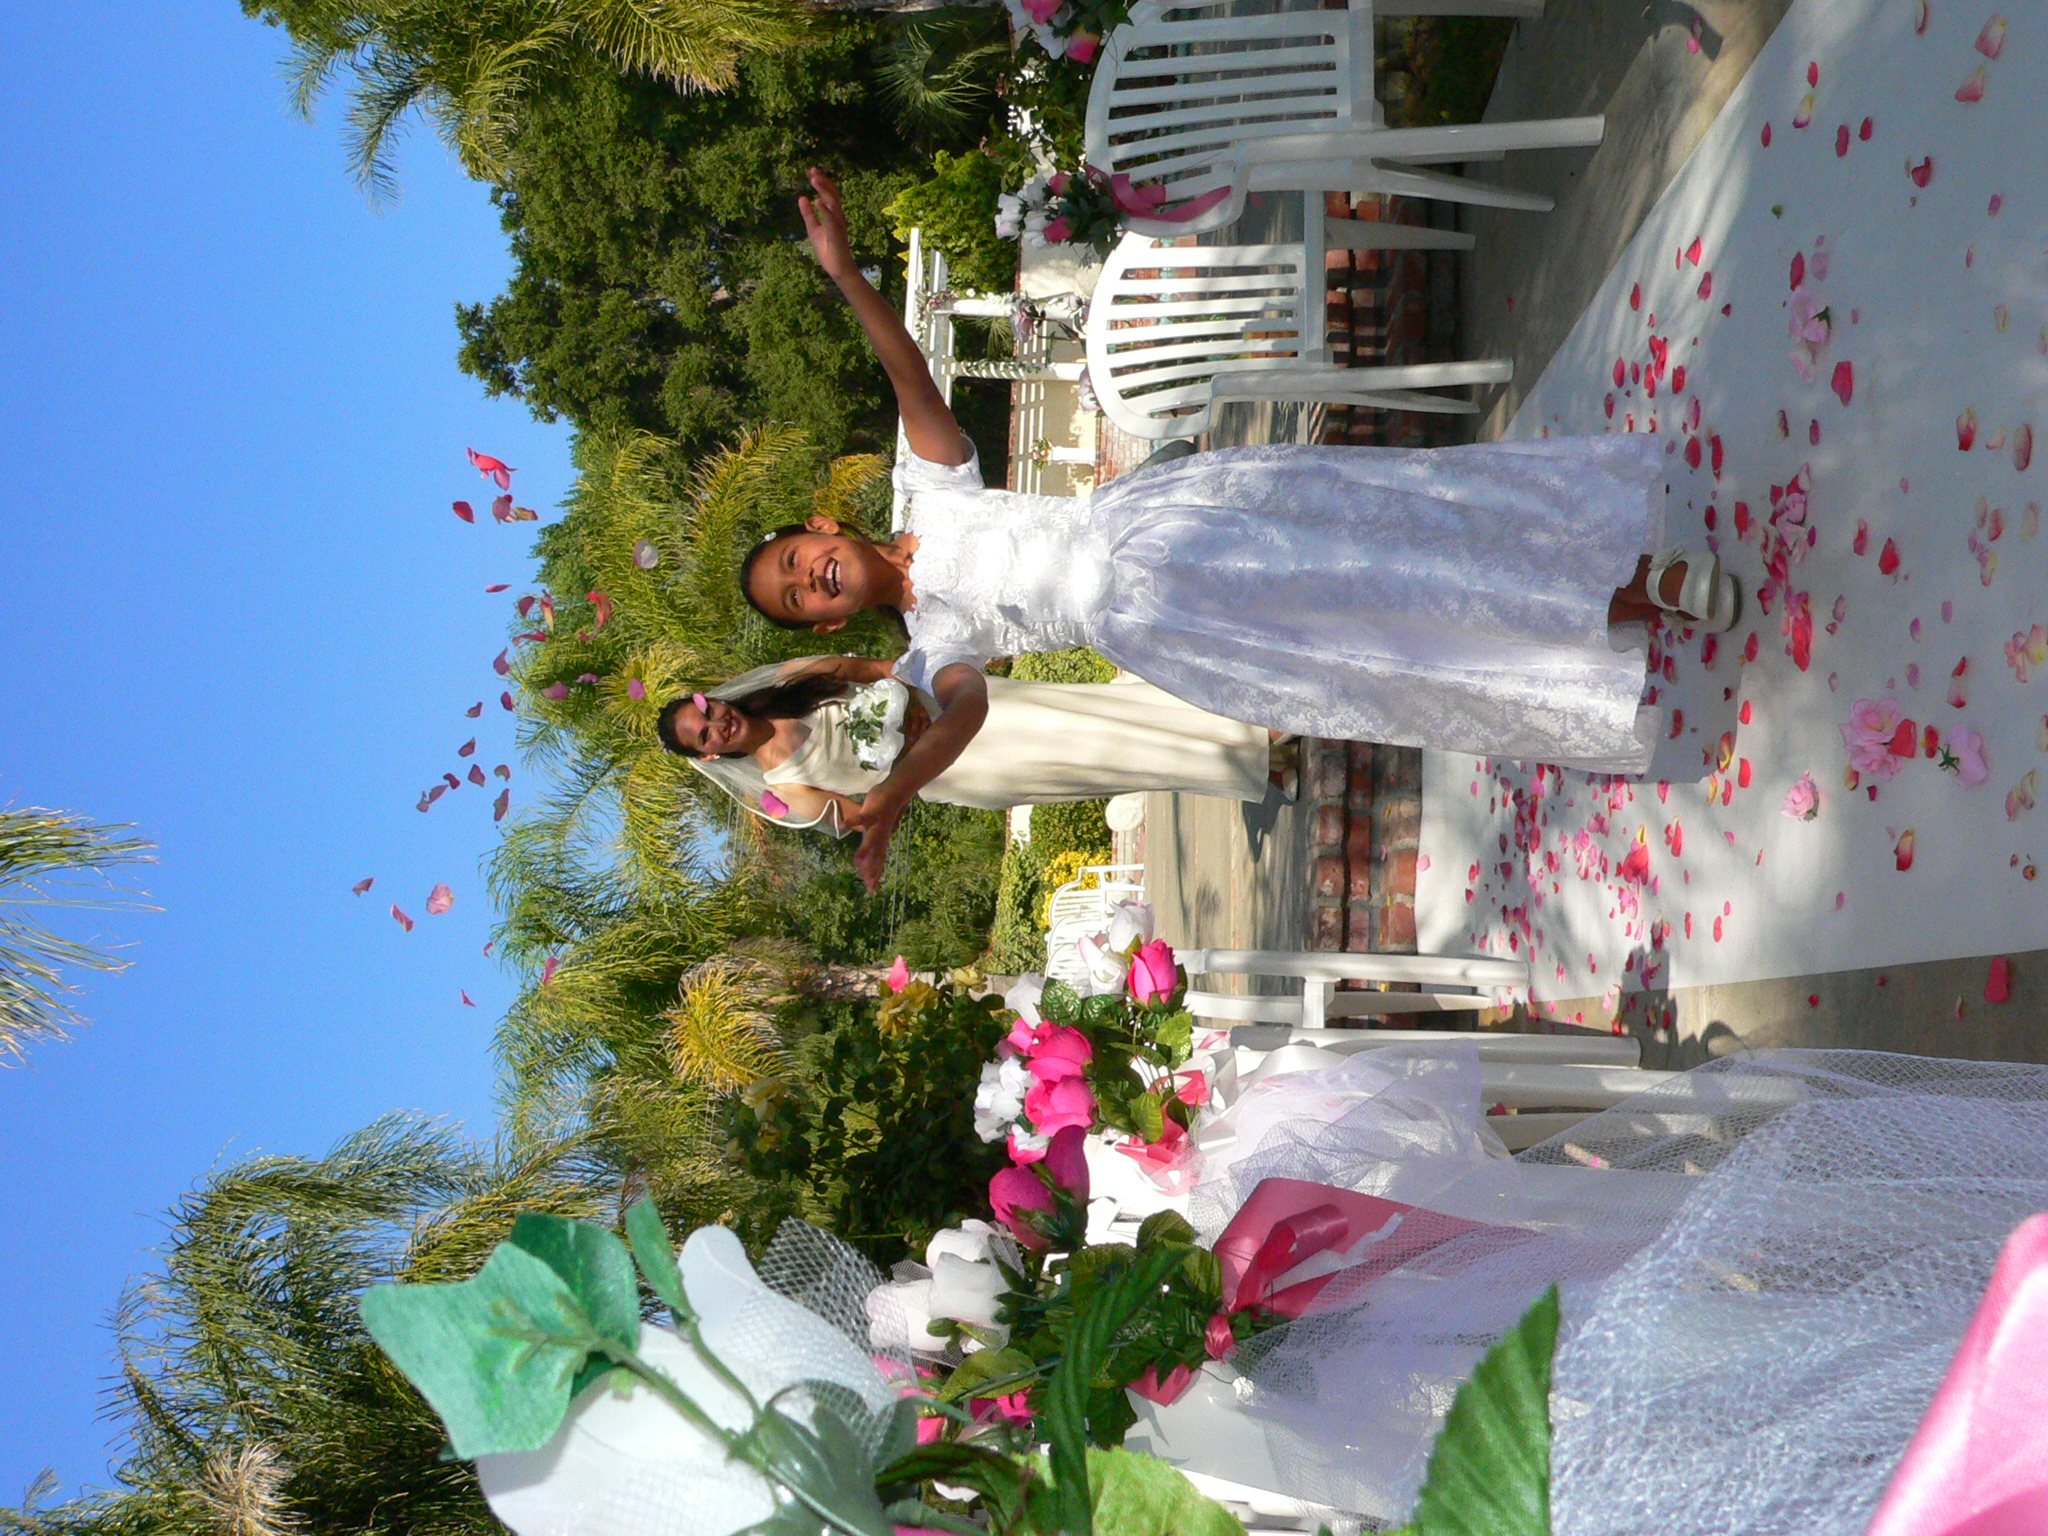 Ceremony, Flowers & Decor, Flower, Girl, Las palmas estate